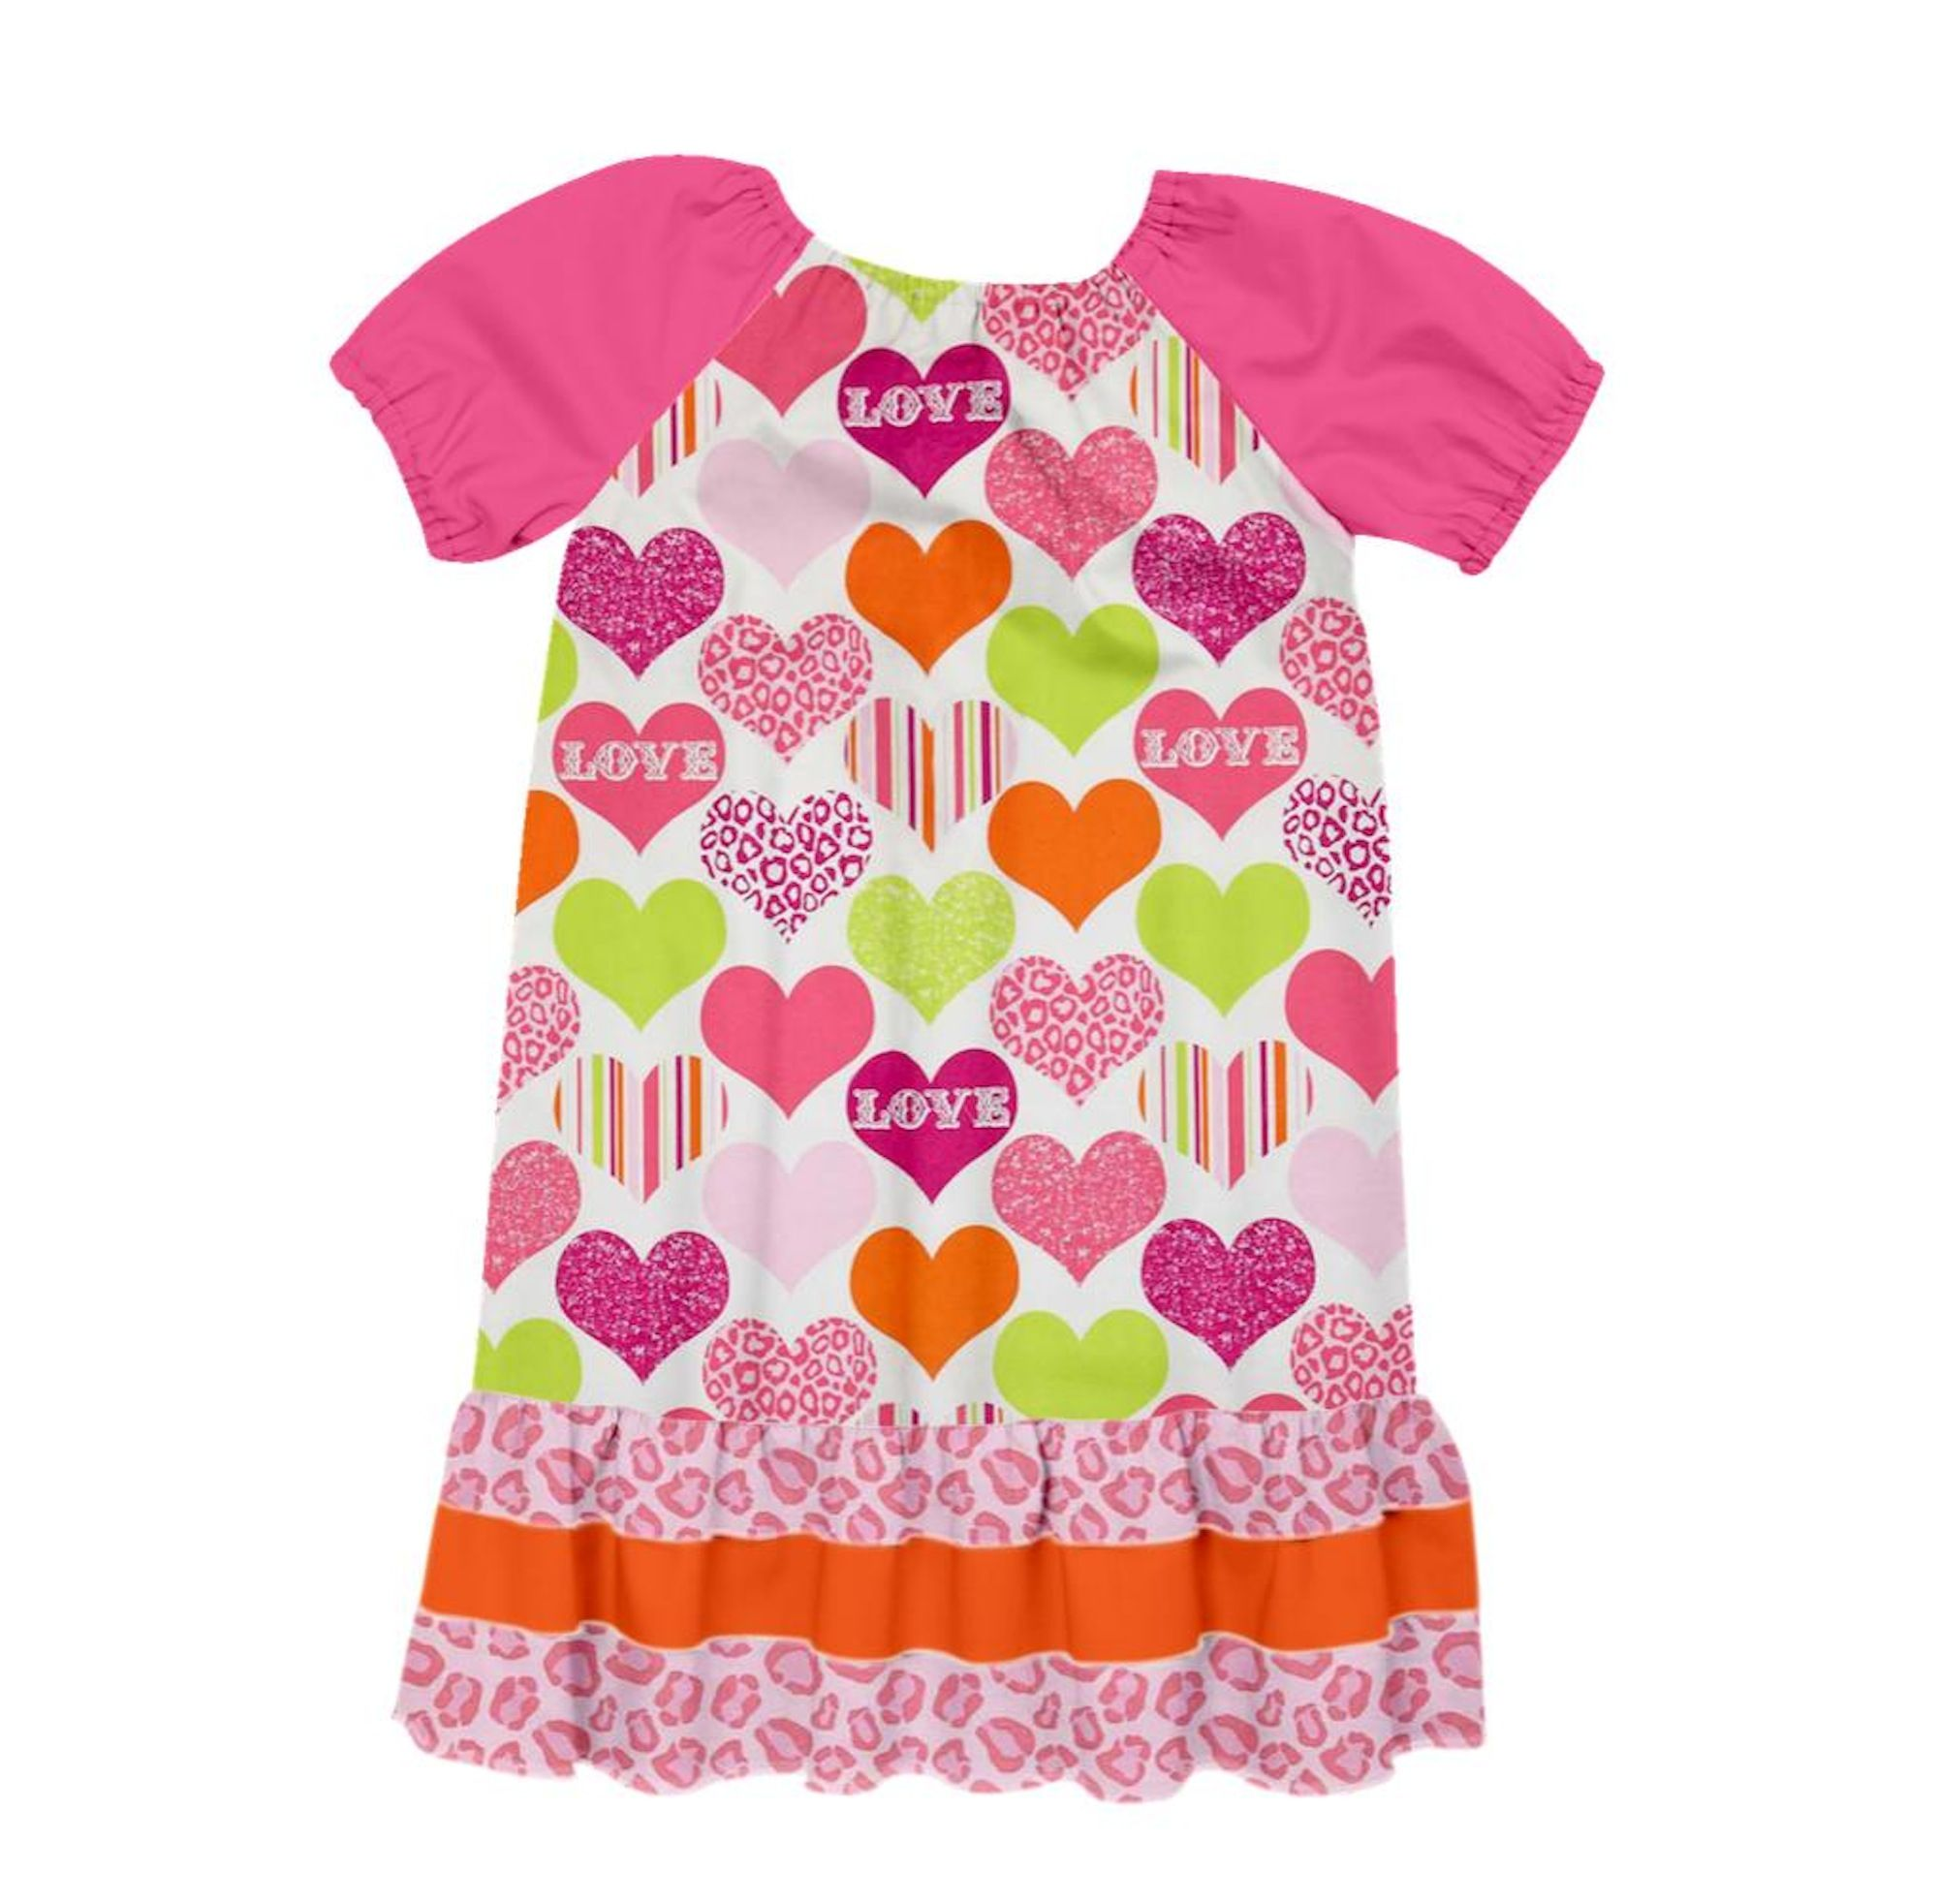 Check out the dress Allison Winters Rader created on Designed By Me from Lolly Wolly Doodle where YOU are the designer! #cheetah #hearts #lollywollydoodle